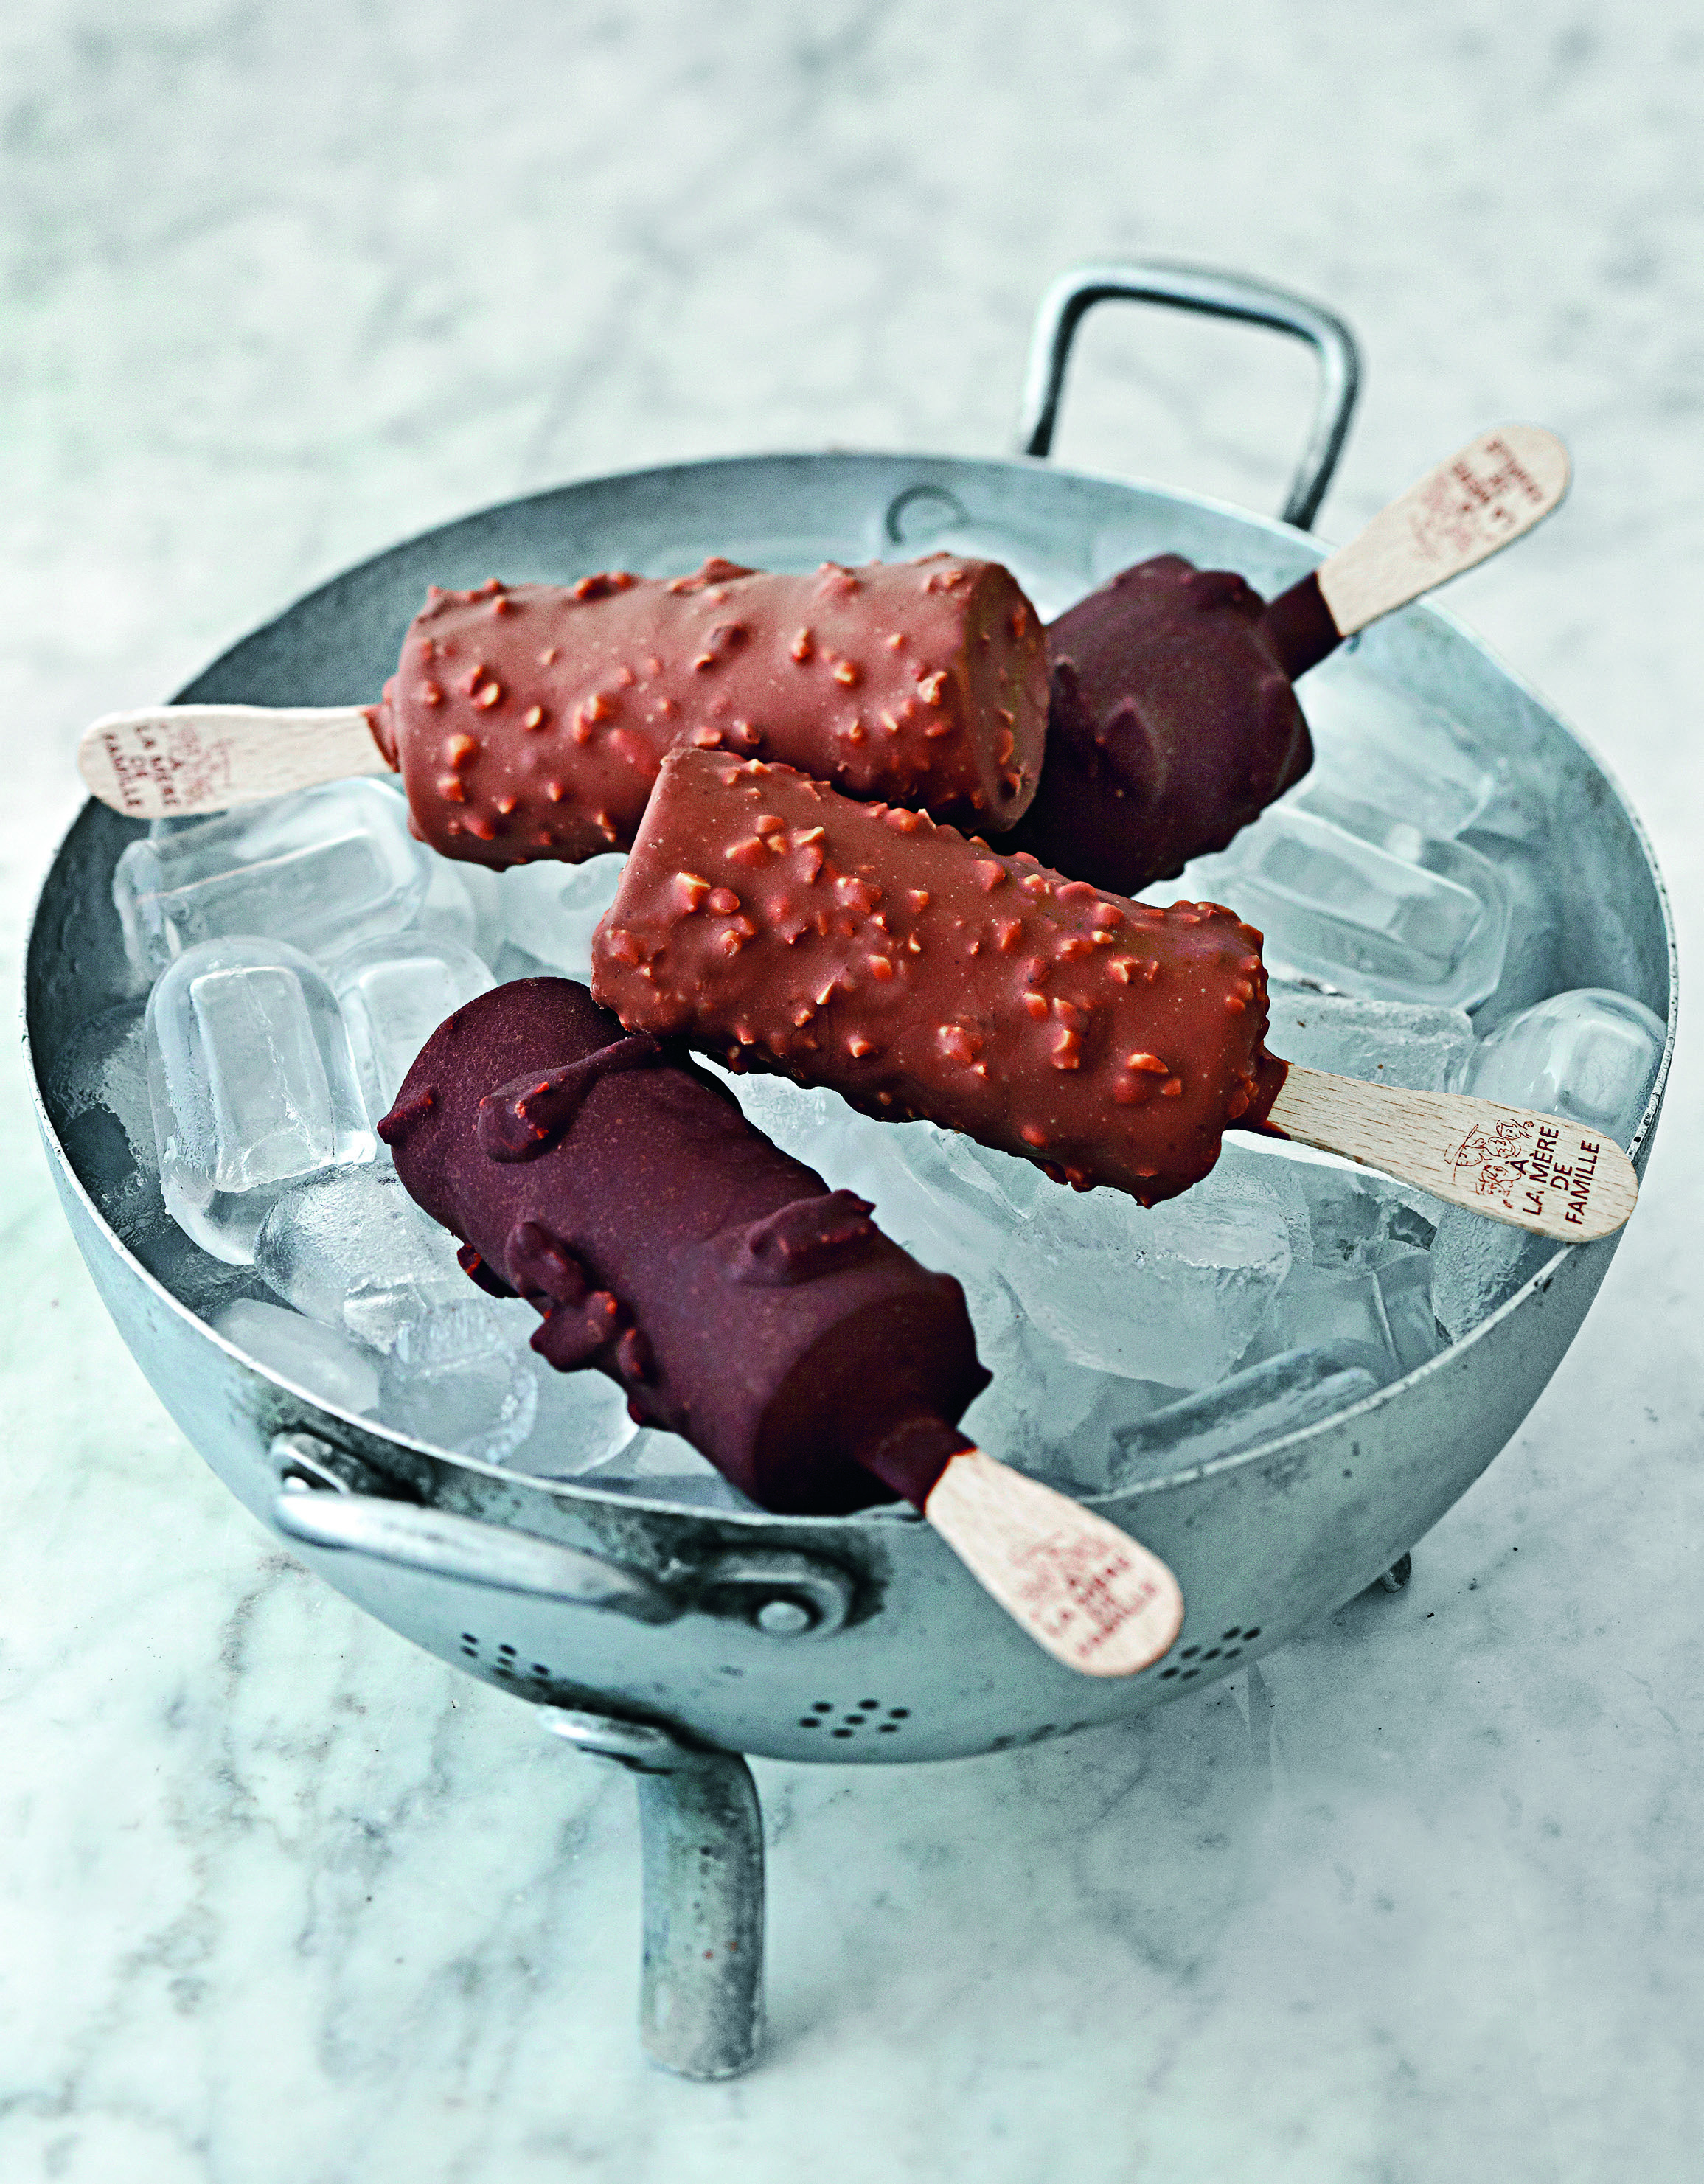 Chocolate–caramel popsicles